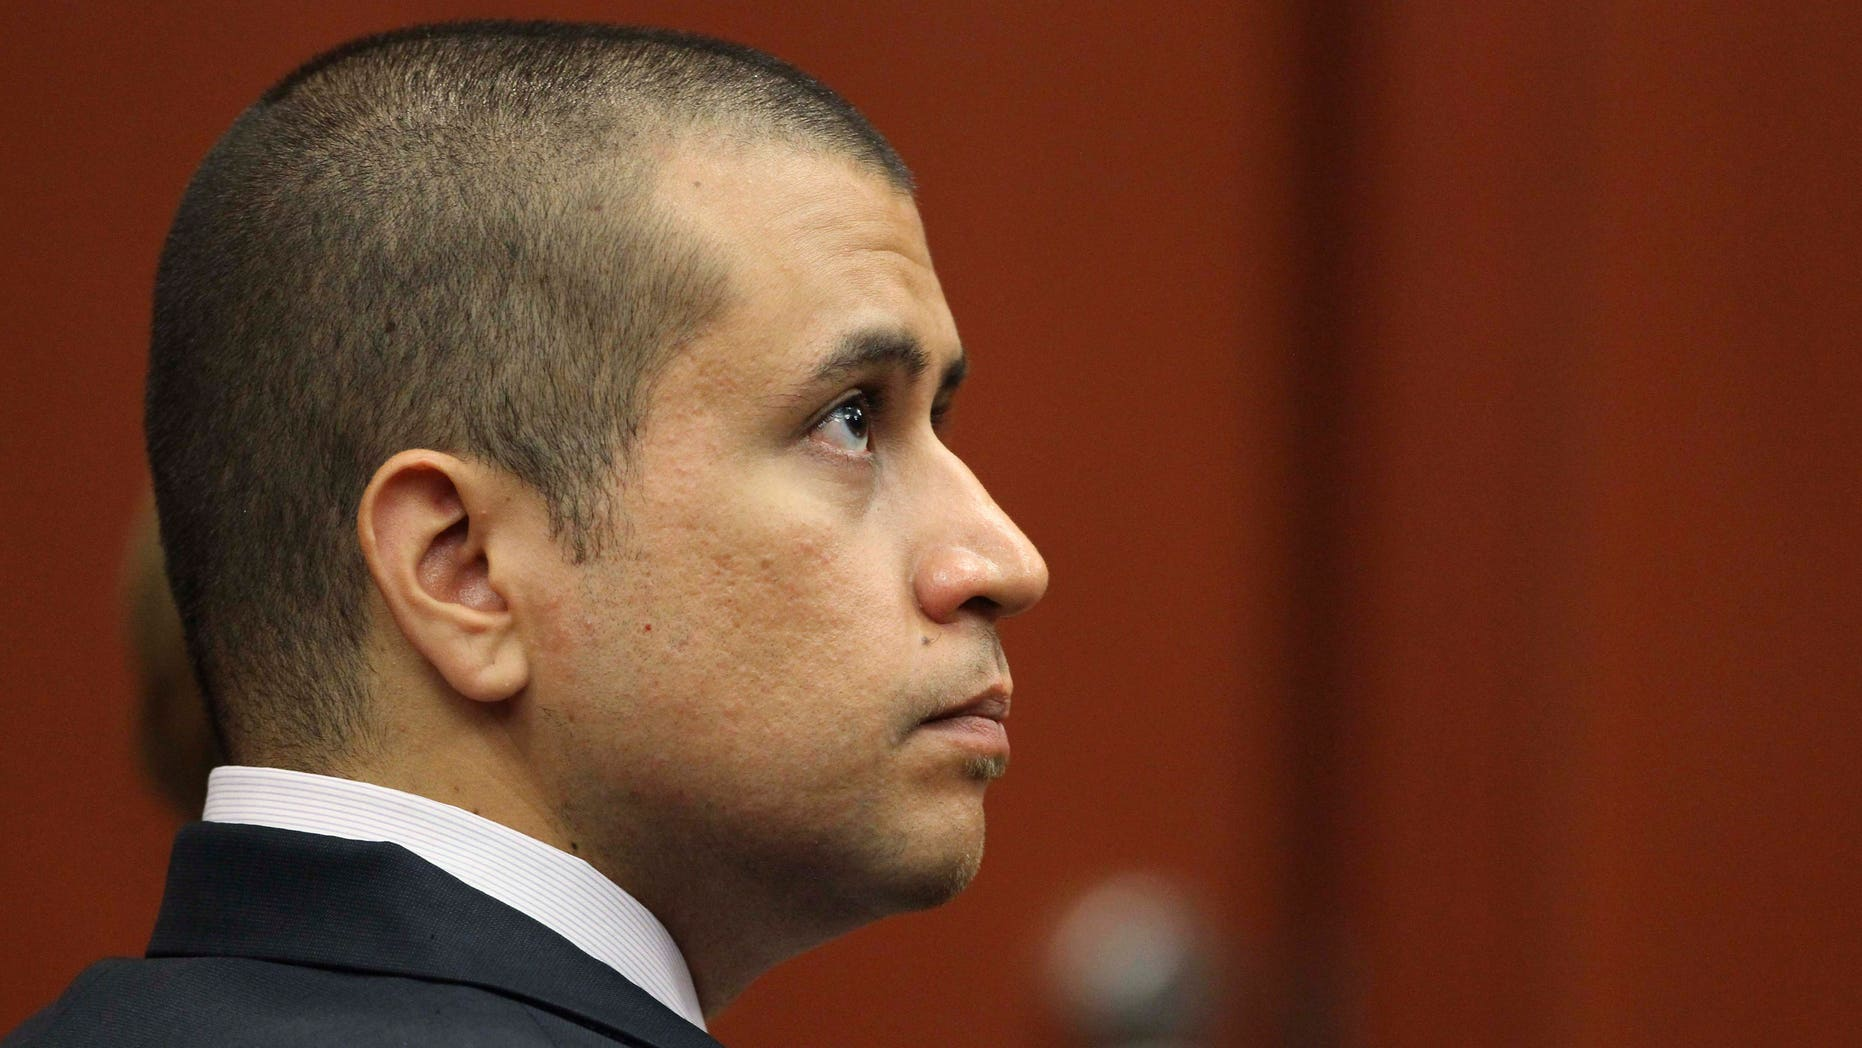 George Zimmerman, shown at an April 20 bond hearing in Sanford, Fla., began carrying a licensed handgun after a pit bull menaced his wife.  (AP Photo/Orlando Sentinel, Gary W. Green, Pool)